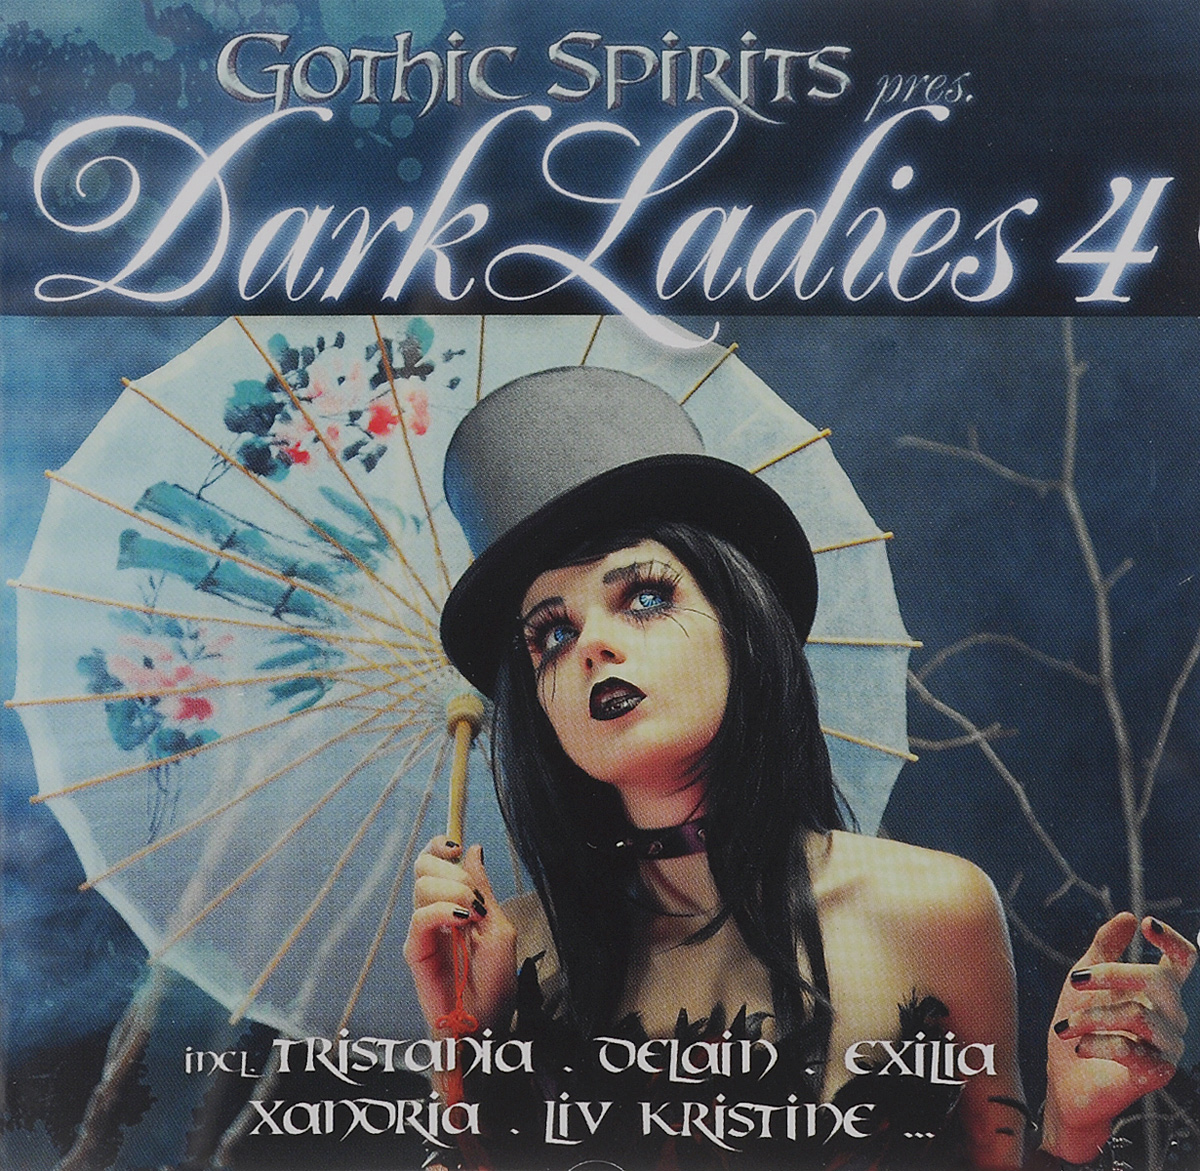 Tristania,Arven,Delain,Helalyn Flowers,Stream Of Passion,Visions Of Atlantis,Xandria,In Strict Confidence,Лив Кристин,Nemesea Gothic Spirits Pres. Dark Ladies 4 xandria